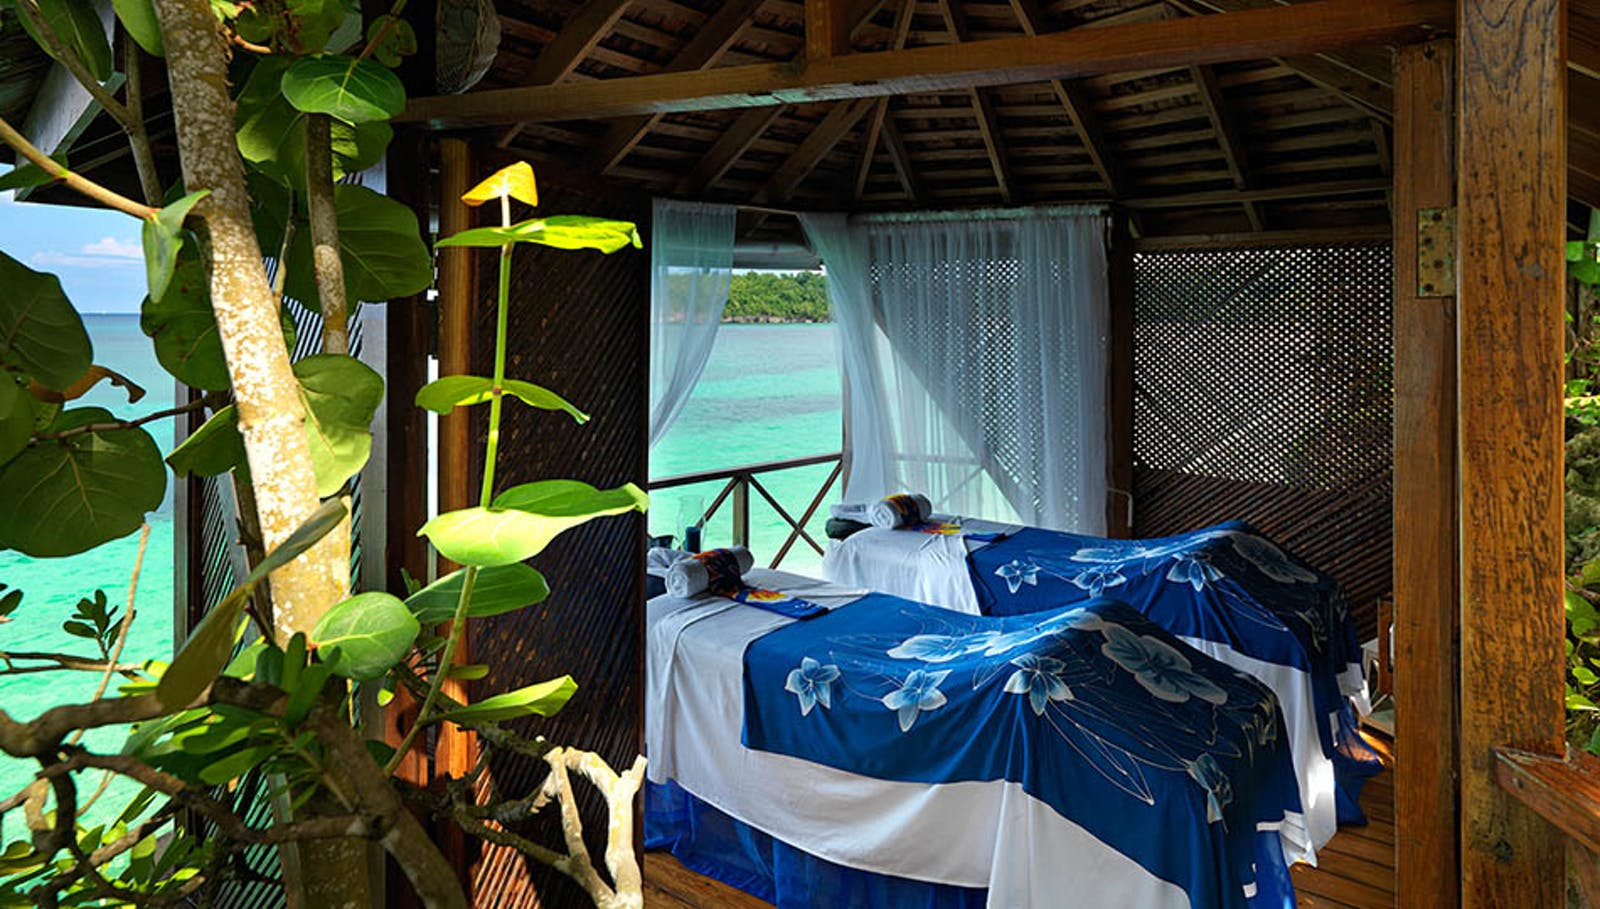 Relaxing spa overlooking the ocean at Jamaica Inn, Jamaica